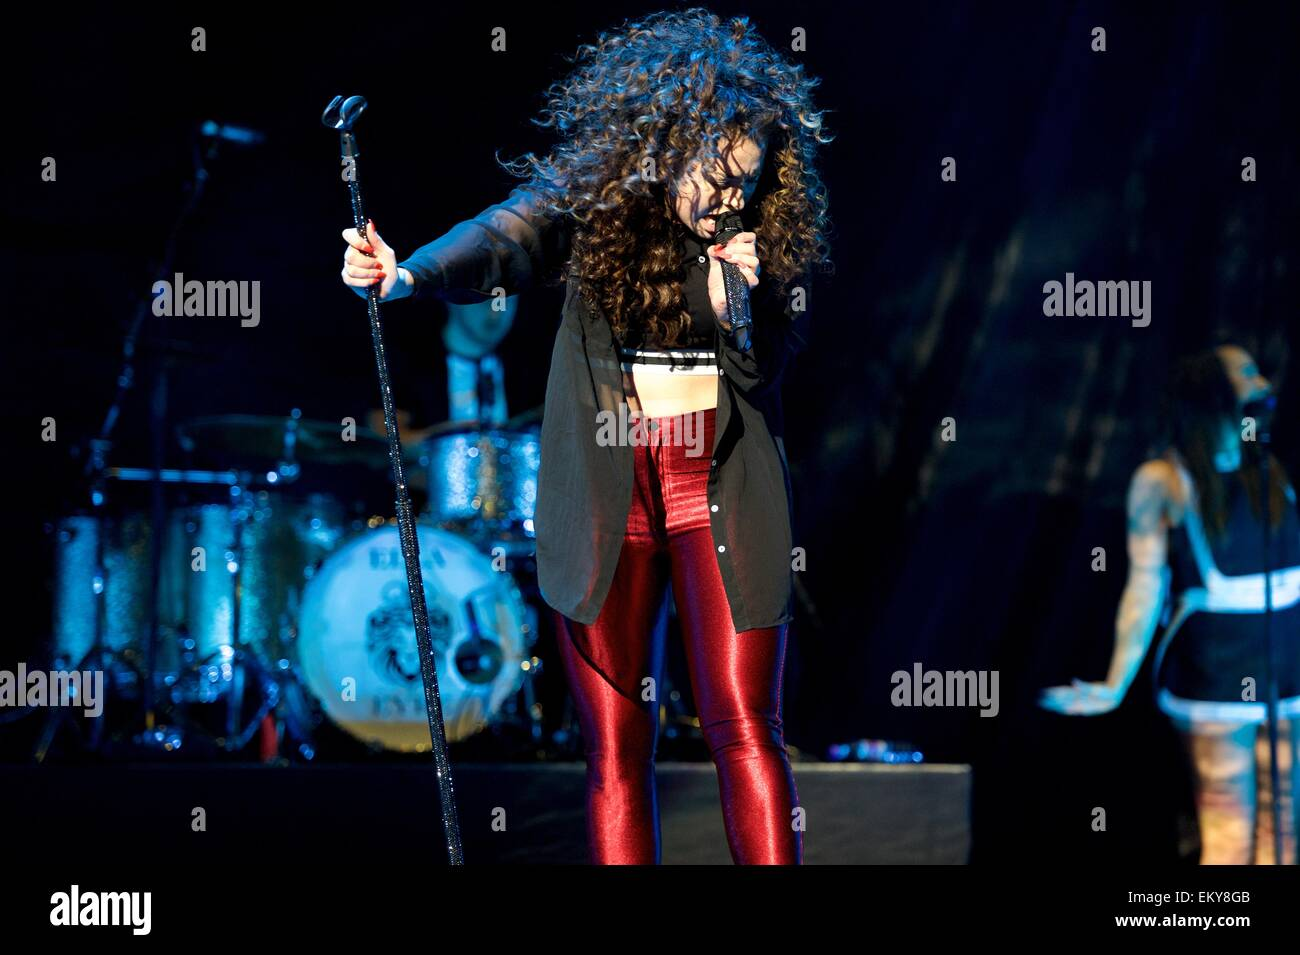 UK singer Ella Eyre performs live at Glasgow SSE Hydro on Tuesday 14th April 2015 Stock Photo